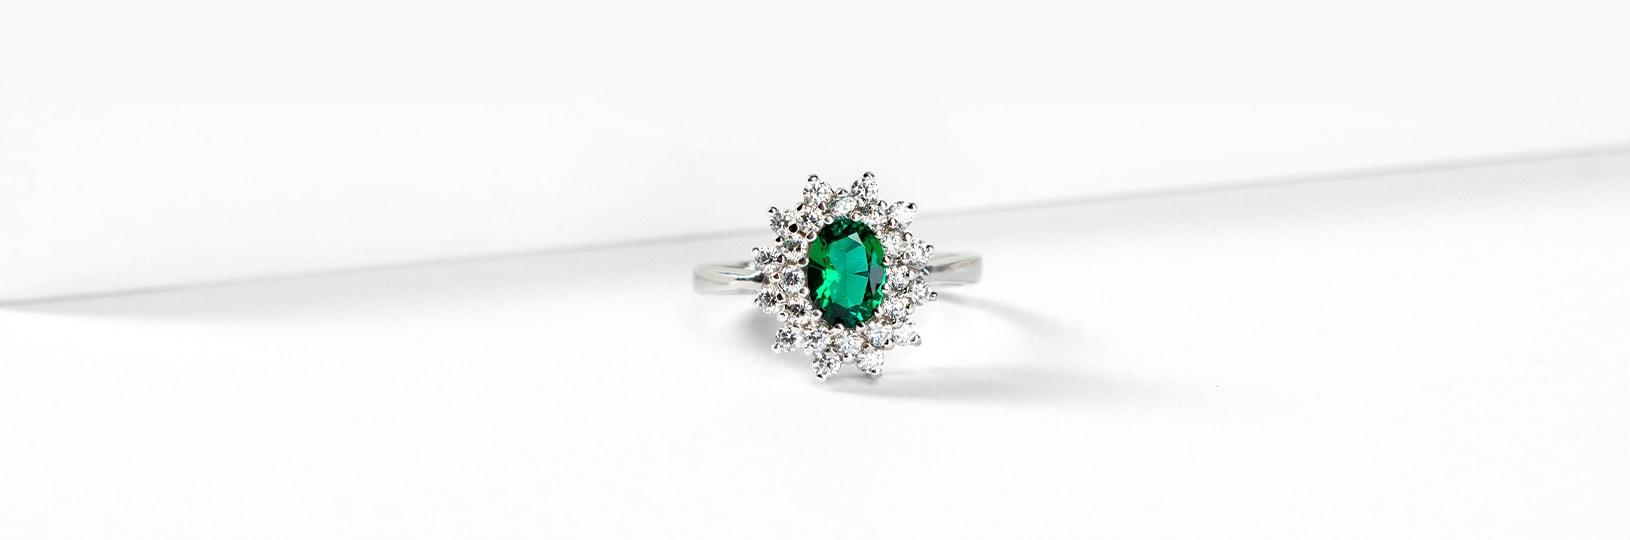 Lab created emerald right hand ring